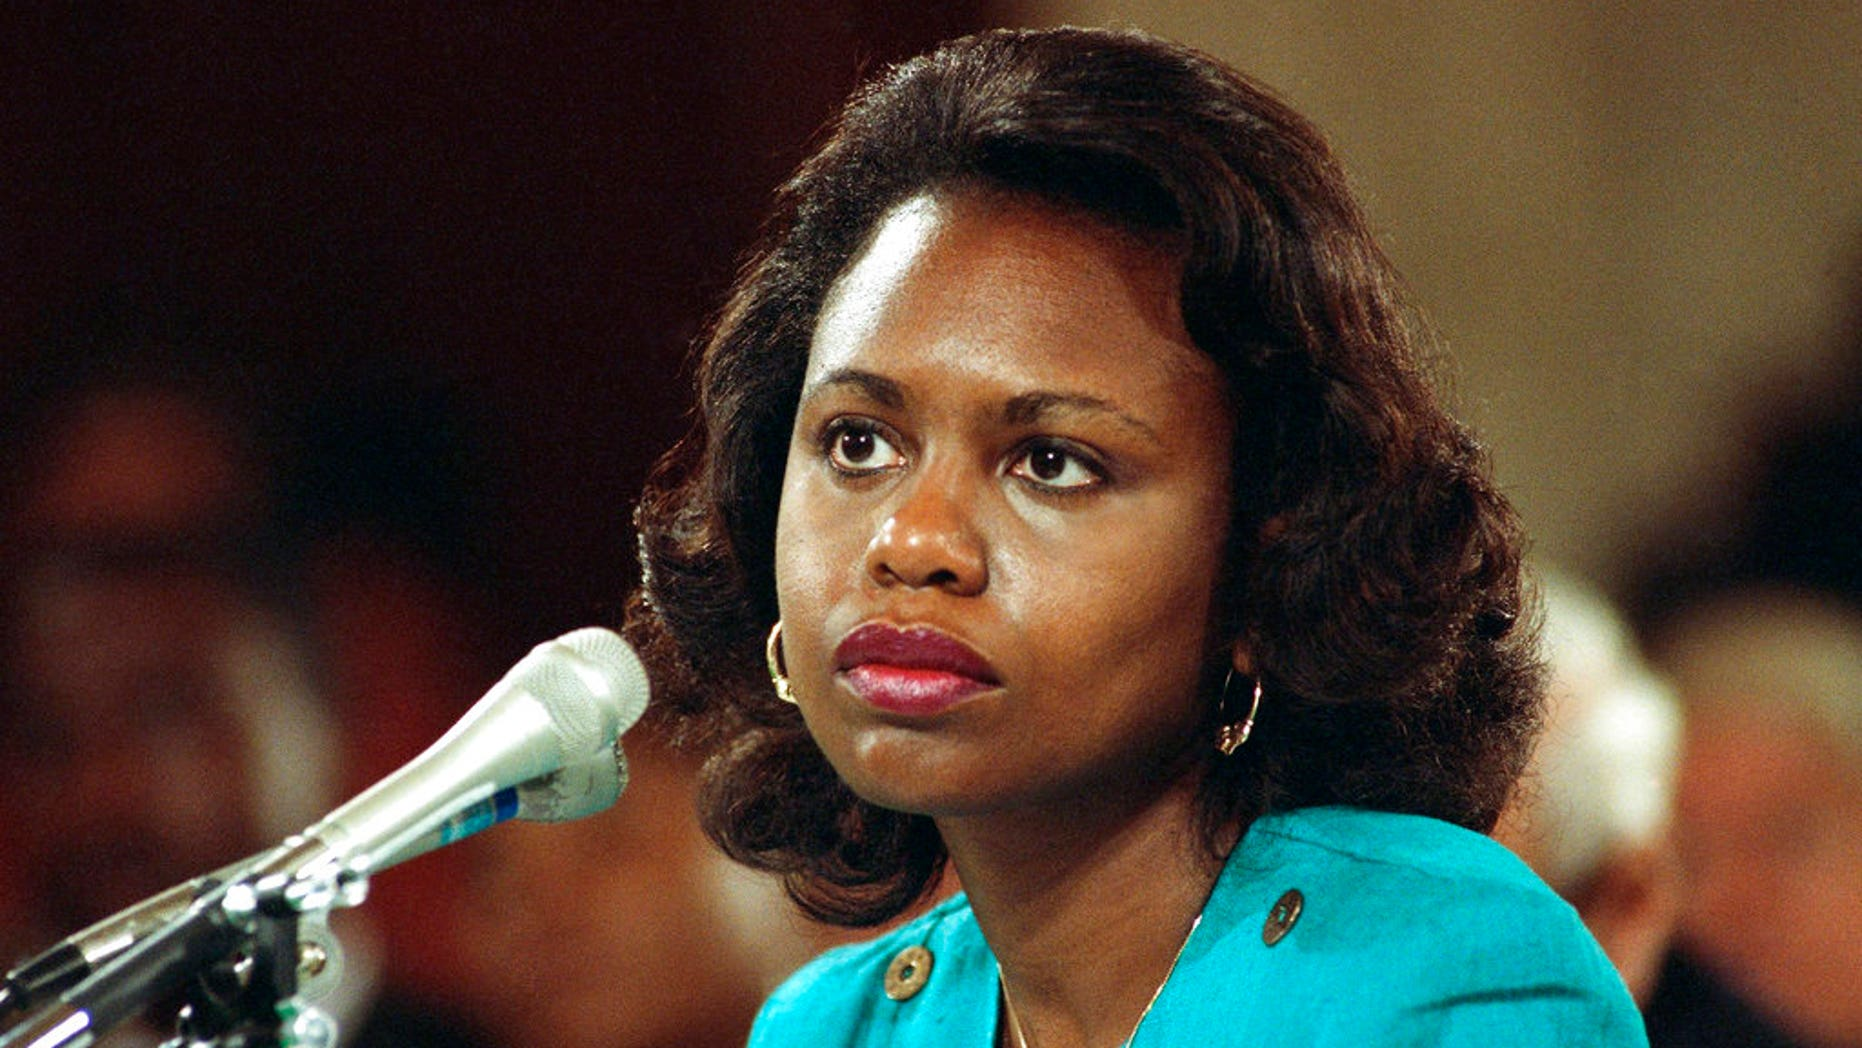 University of Oklahoma law professor Anita Hill testifying before the Senate Judiciary Committee on the nomination of Clarence Thomas to the Supreme Court on Capitol Hill in Washington, Oct. 11, 1991.